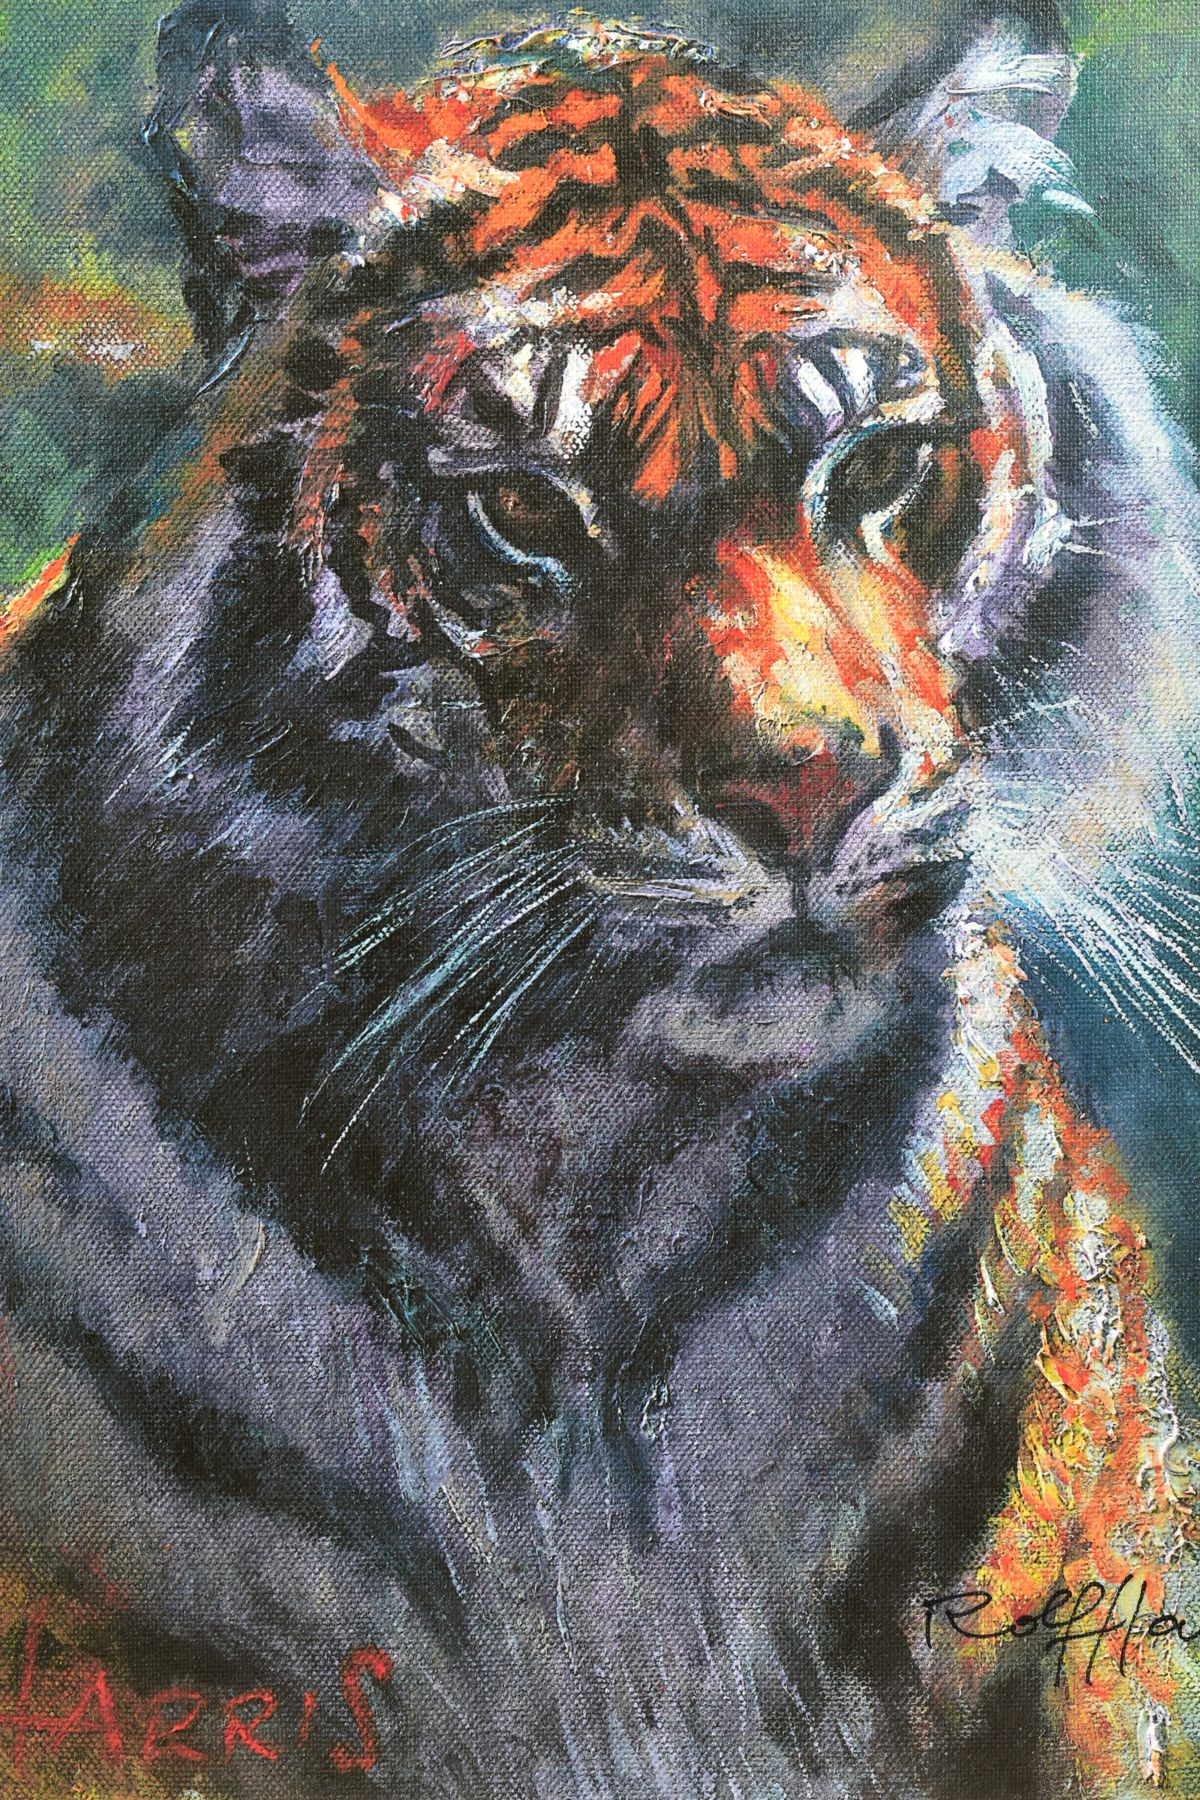 ROLF HARRIS (AUSTRALIAN 1930), 'Tiger in The Sun', a Limited Edition print, 100/95, signed bottom - Image 2 of 5